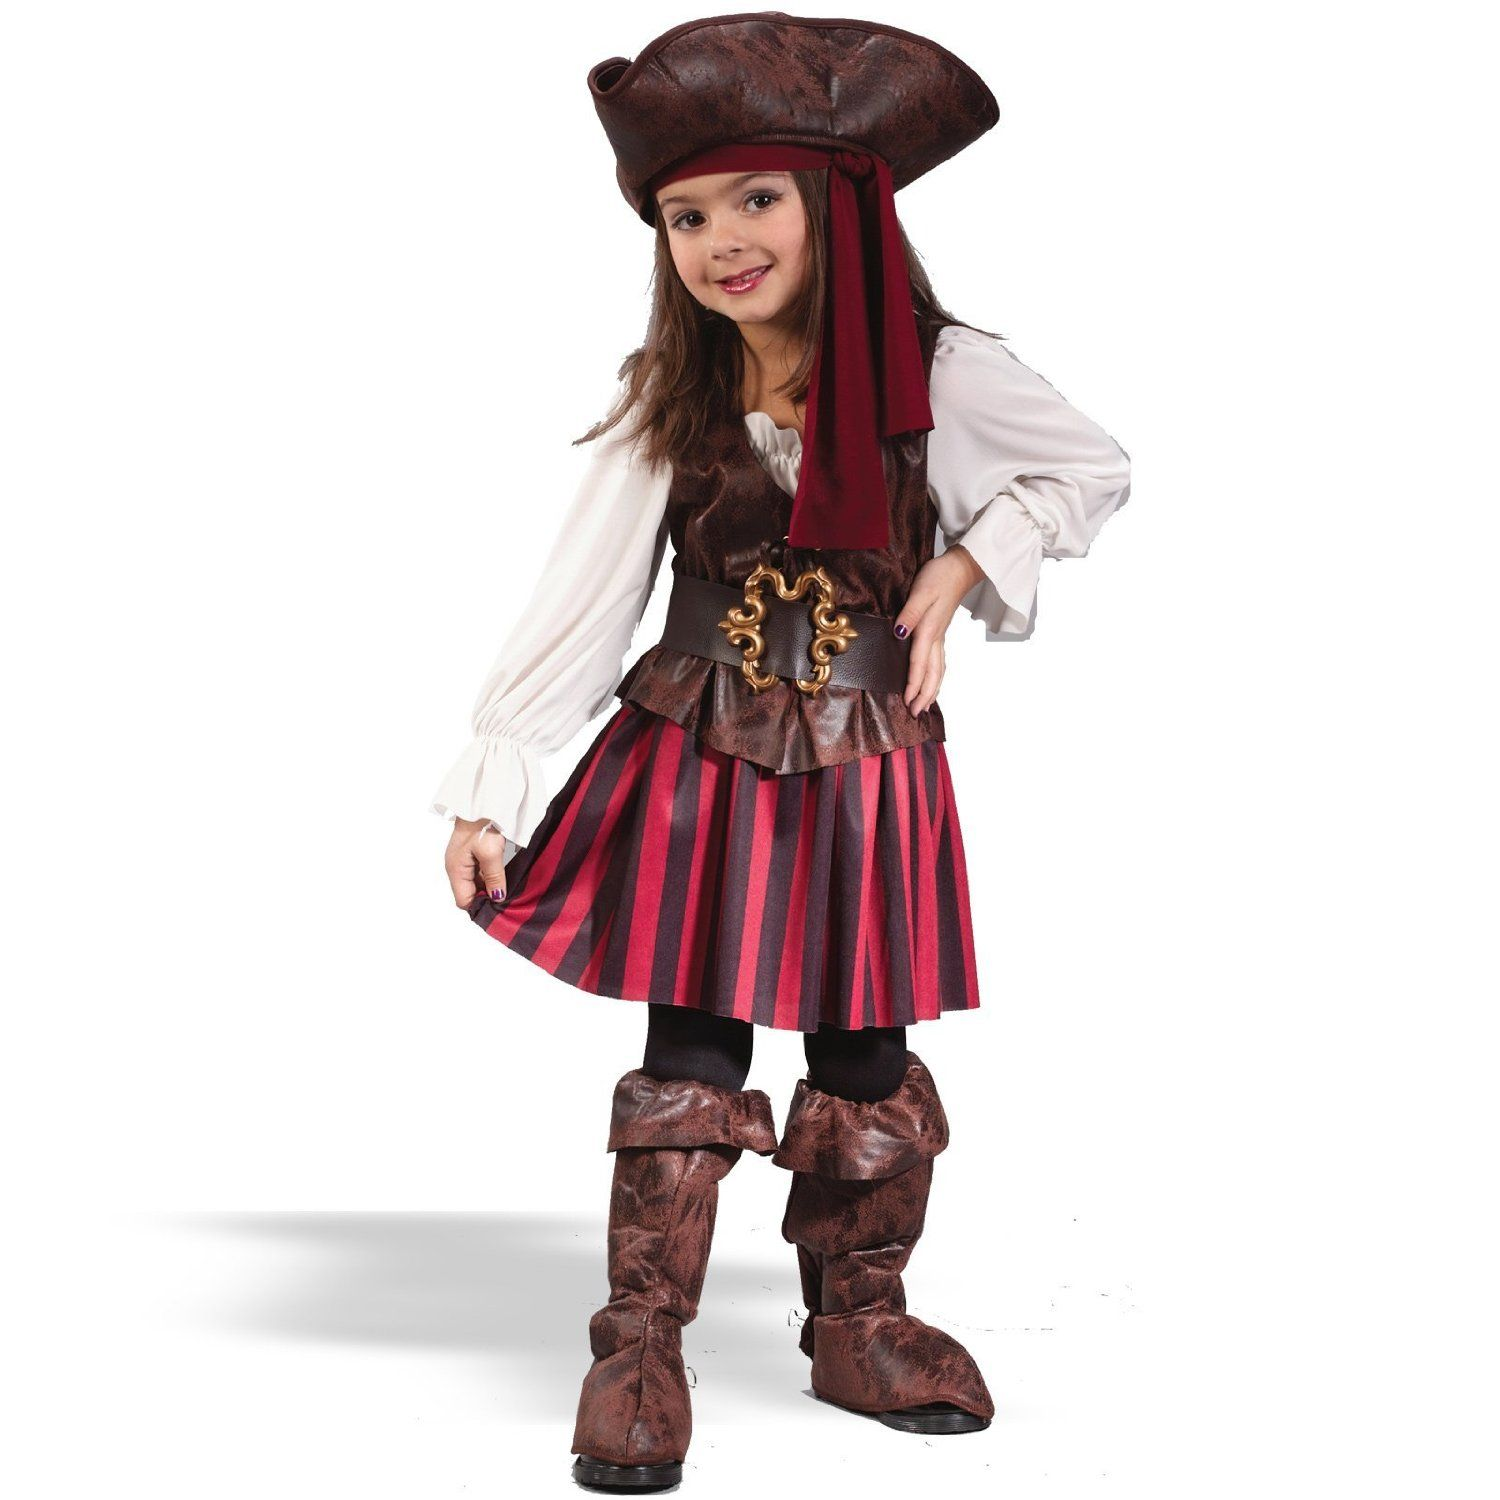 explore cow girl costumes pirate costume girl and more - Mermaid Halloween Costume For Kids